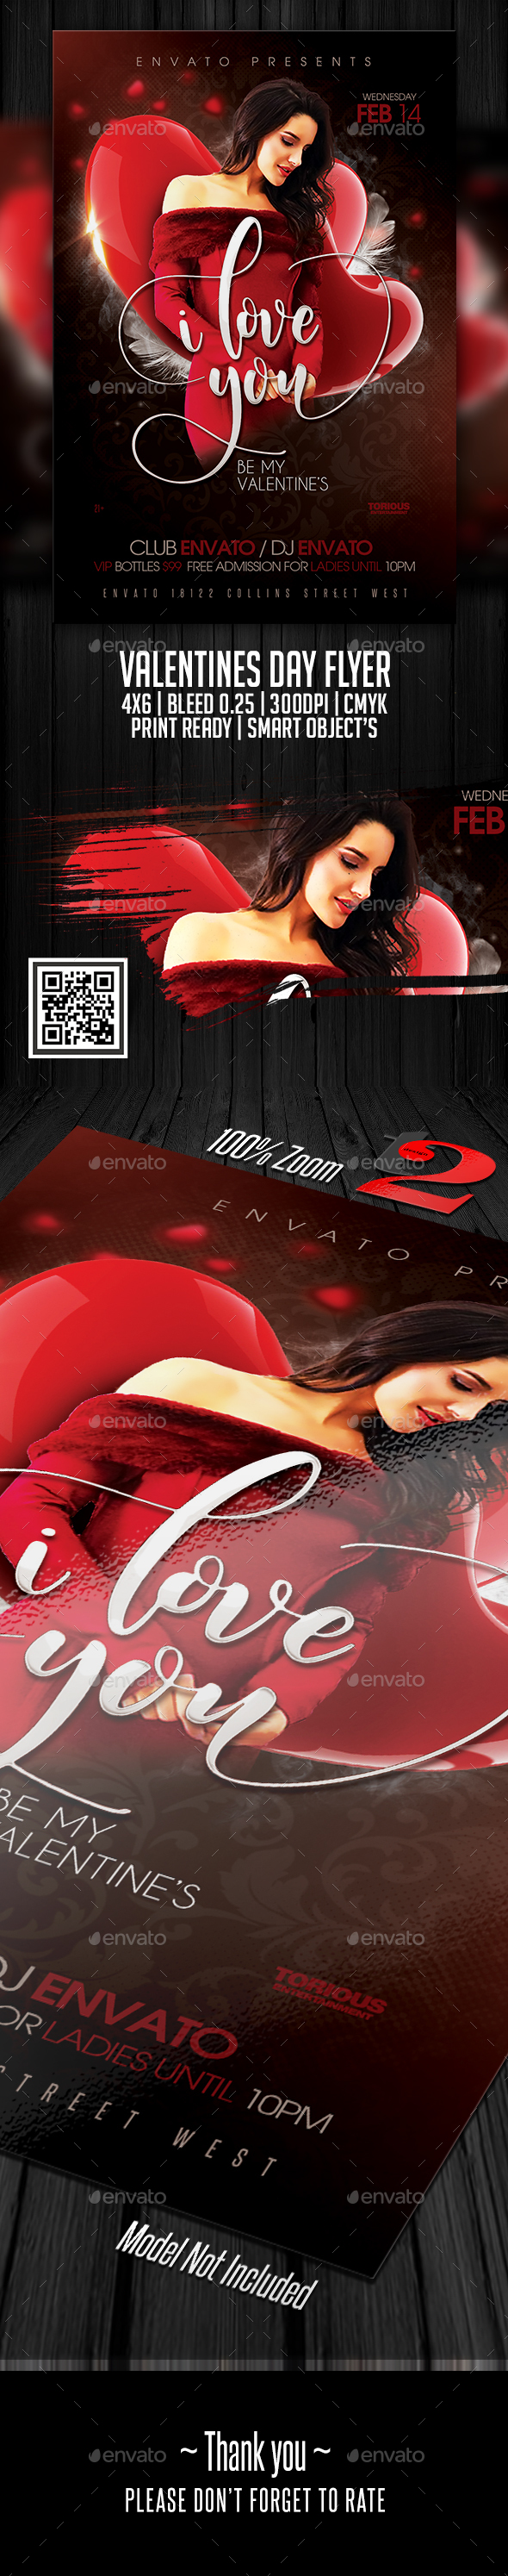 GraphicRiver Valentines Day Flyer Template 21199546